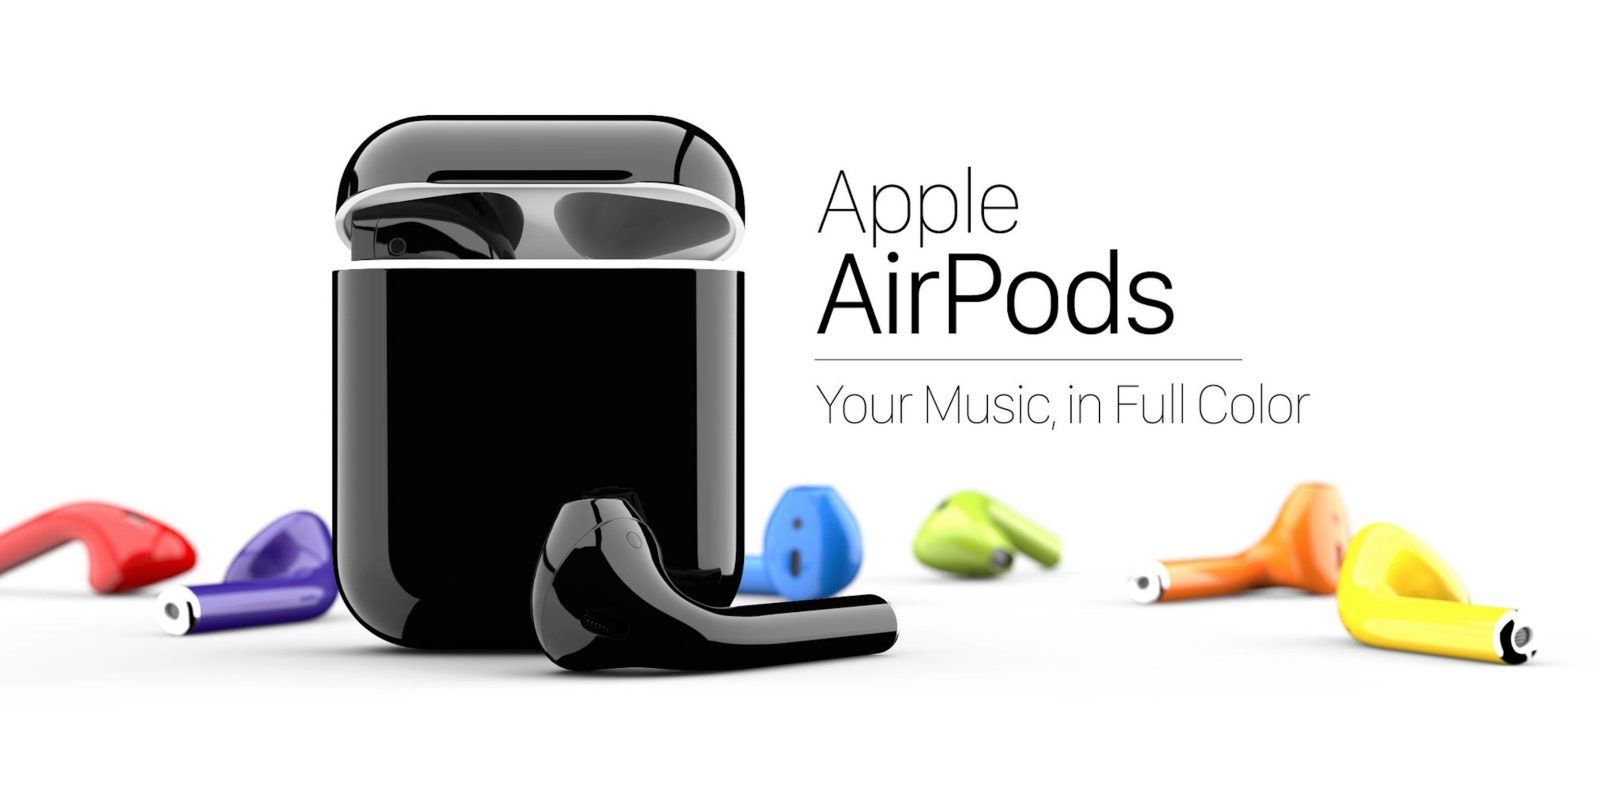 ColorWare Introduces Ability To Customize AirPods In 58 Different Colors